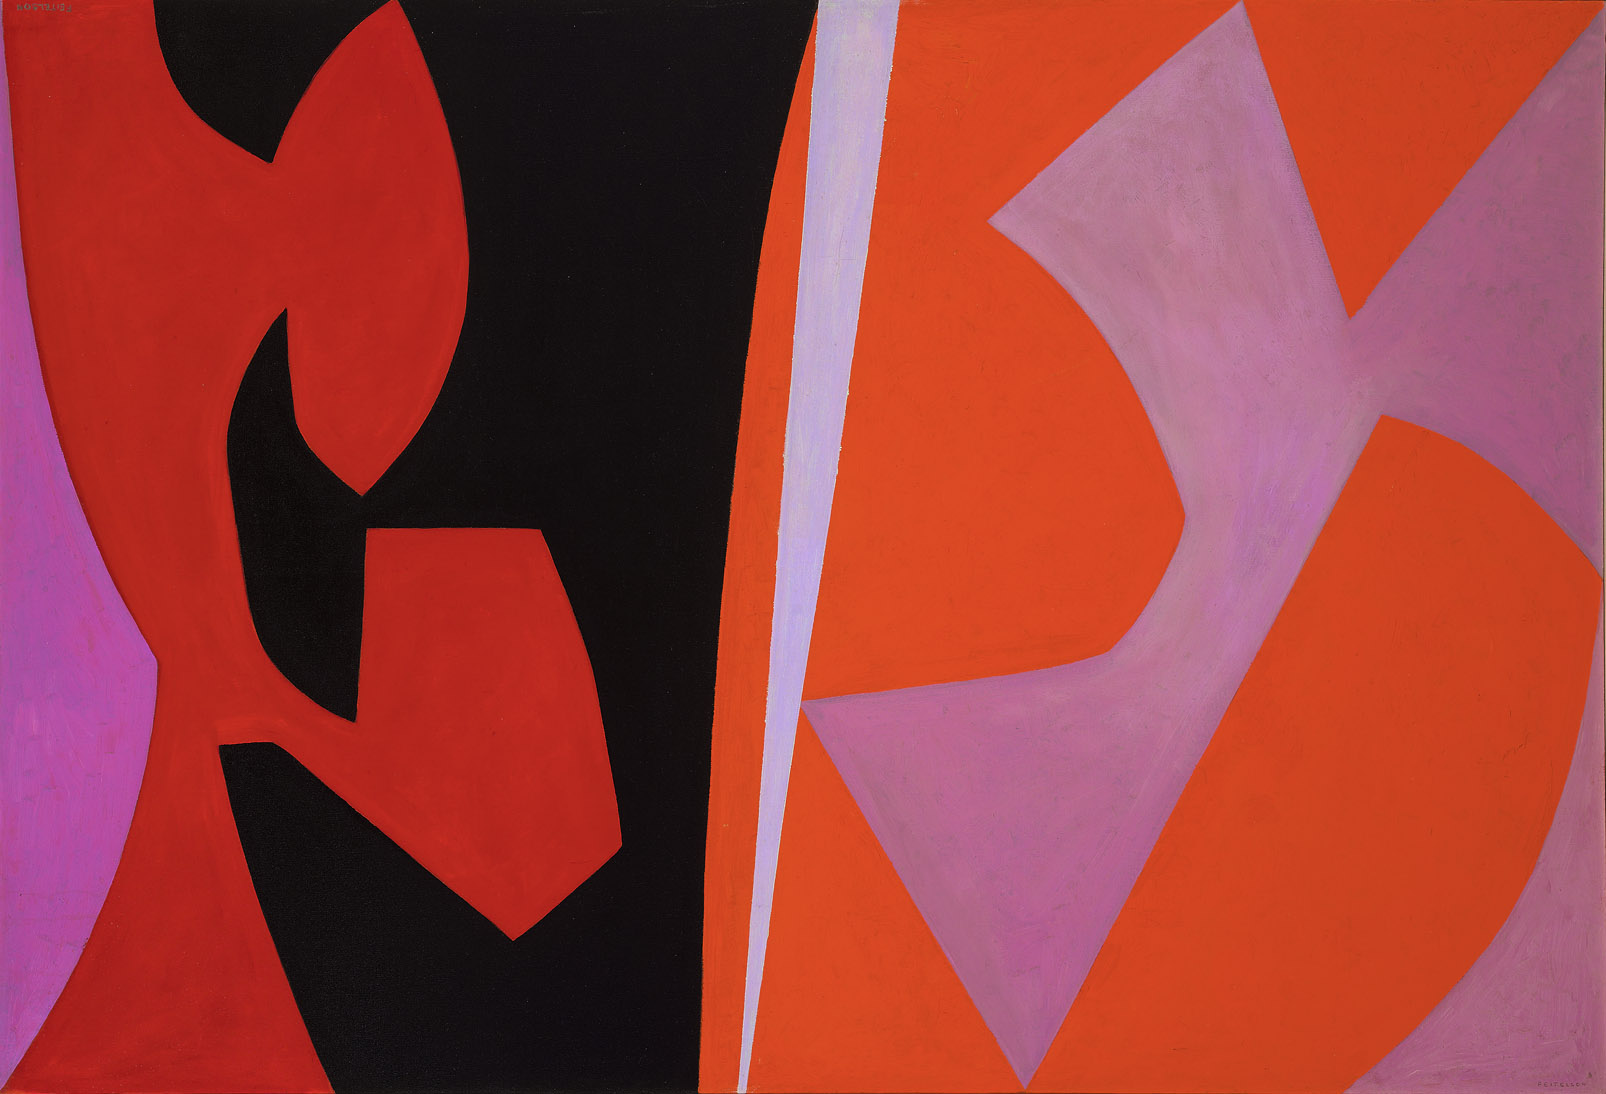 Magical Space Forms , 1952 - 1954 oil on canvas 45 x 66 inches; 114.3 x 167.6 centimeters